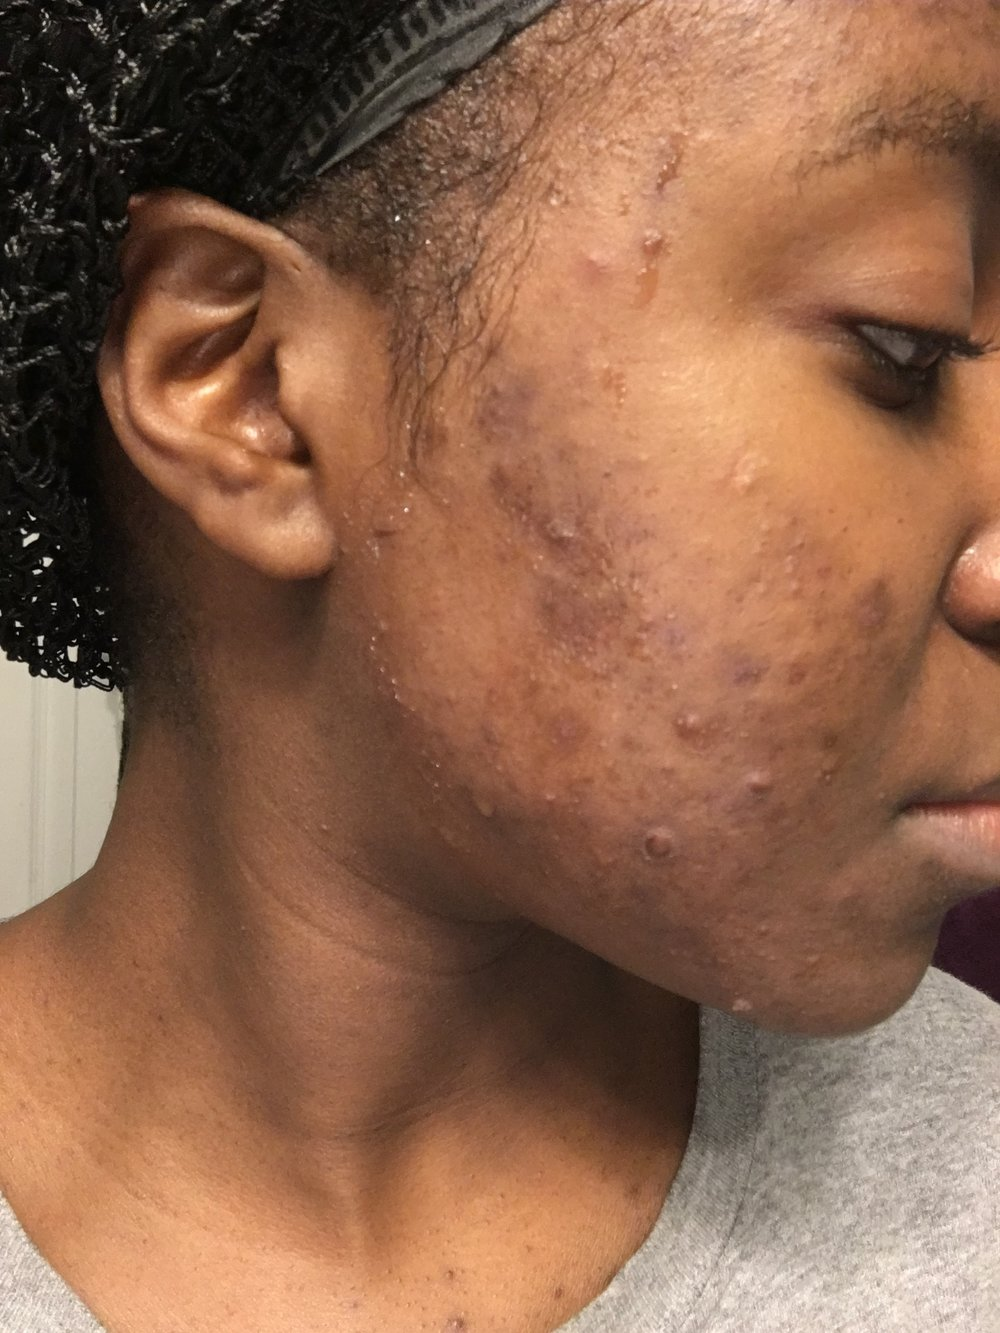 This is a few days before getting another bottle of the Body Shop Tea Tree Skin Cleansing Face Wash.